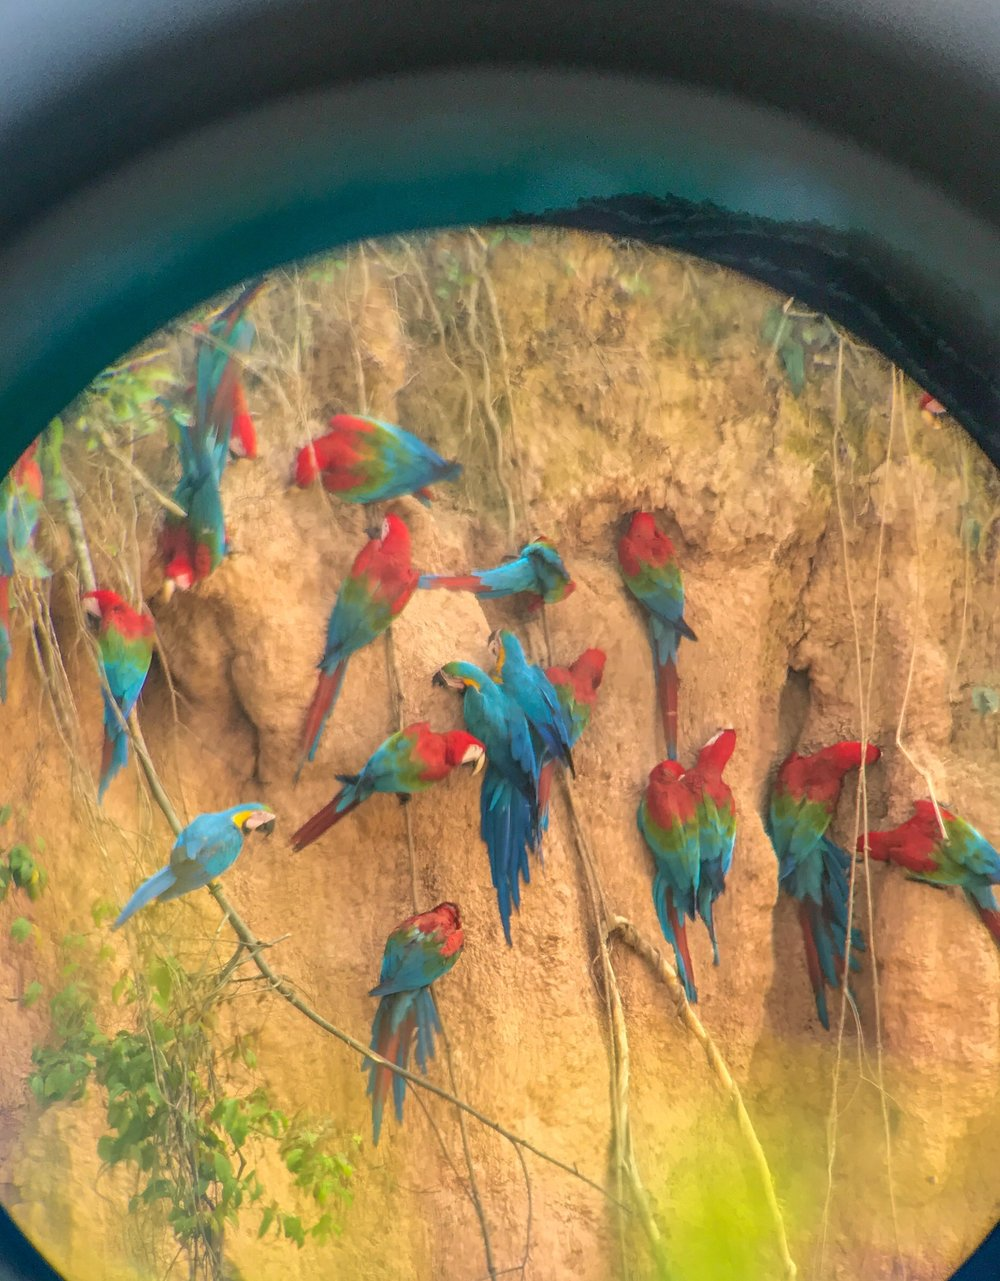 Viewing the daily morning macaw's feast through binoculars